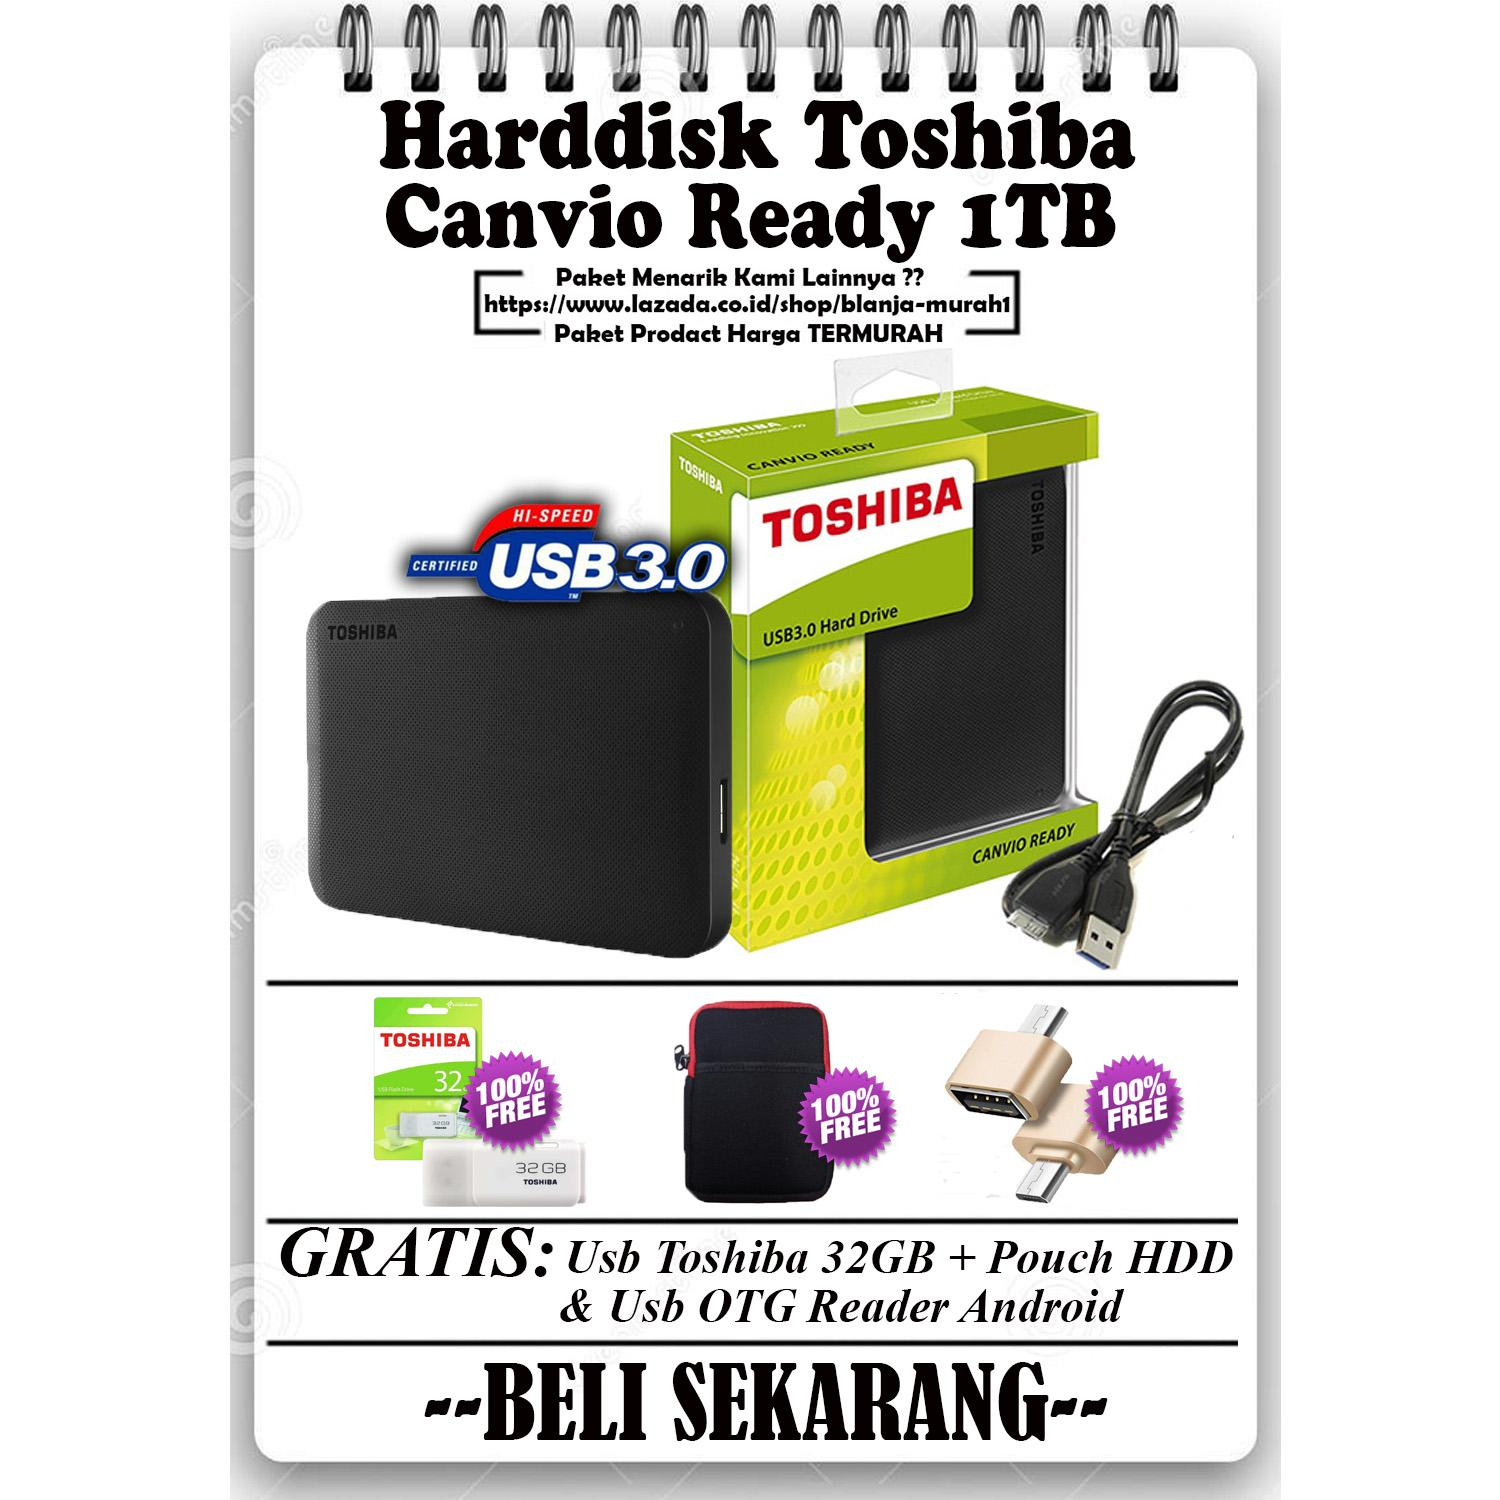 Toshiba Canvio Ready 1TB - HDD / HD / Hardisk Eksternal - GRATIS Usb Toshiba 32GB + Pouch Harddisk & Usb OTG Card Reader